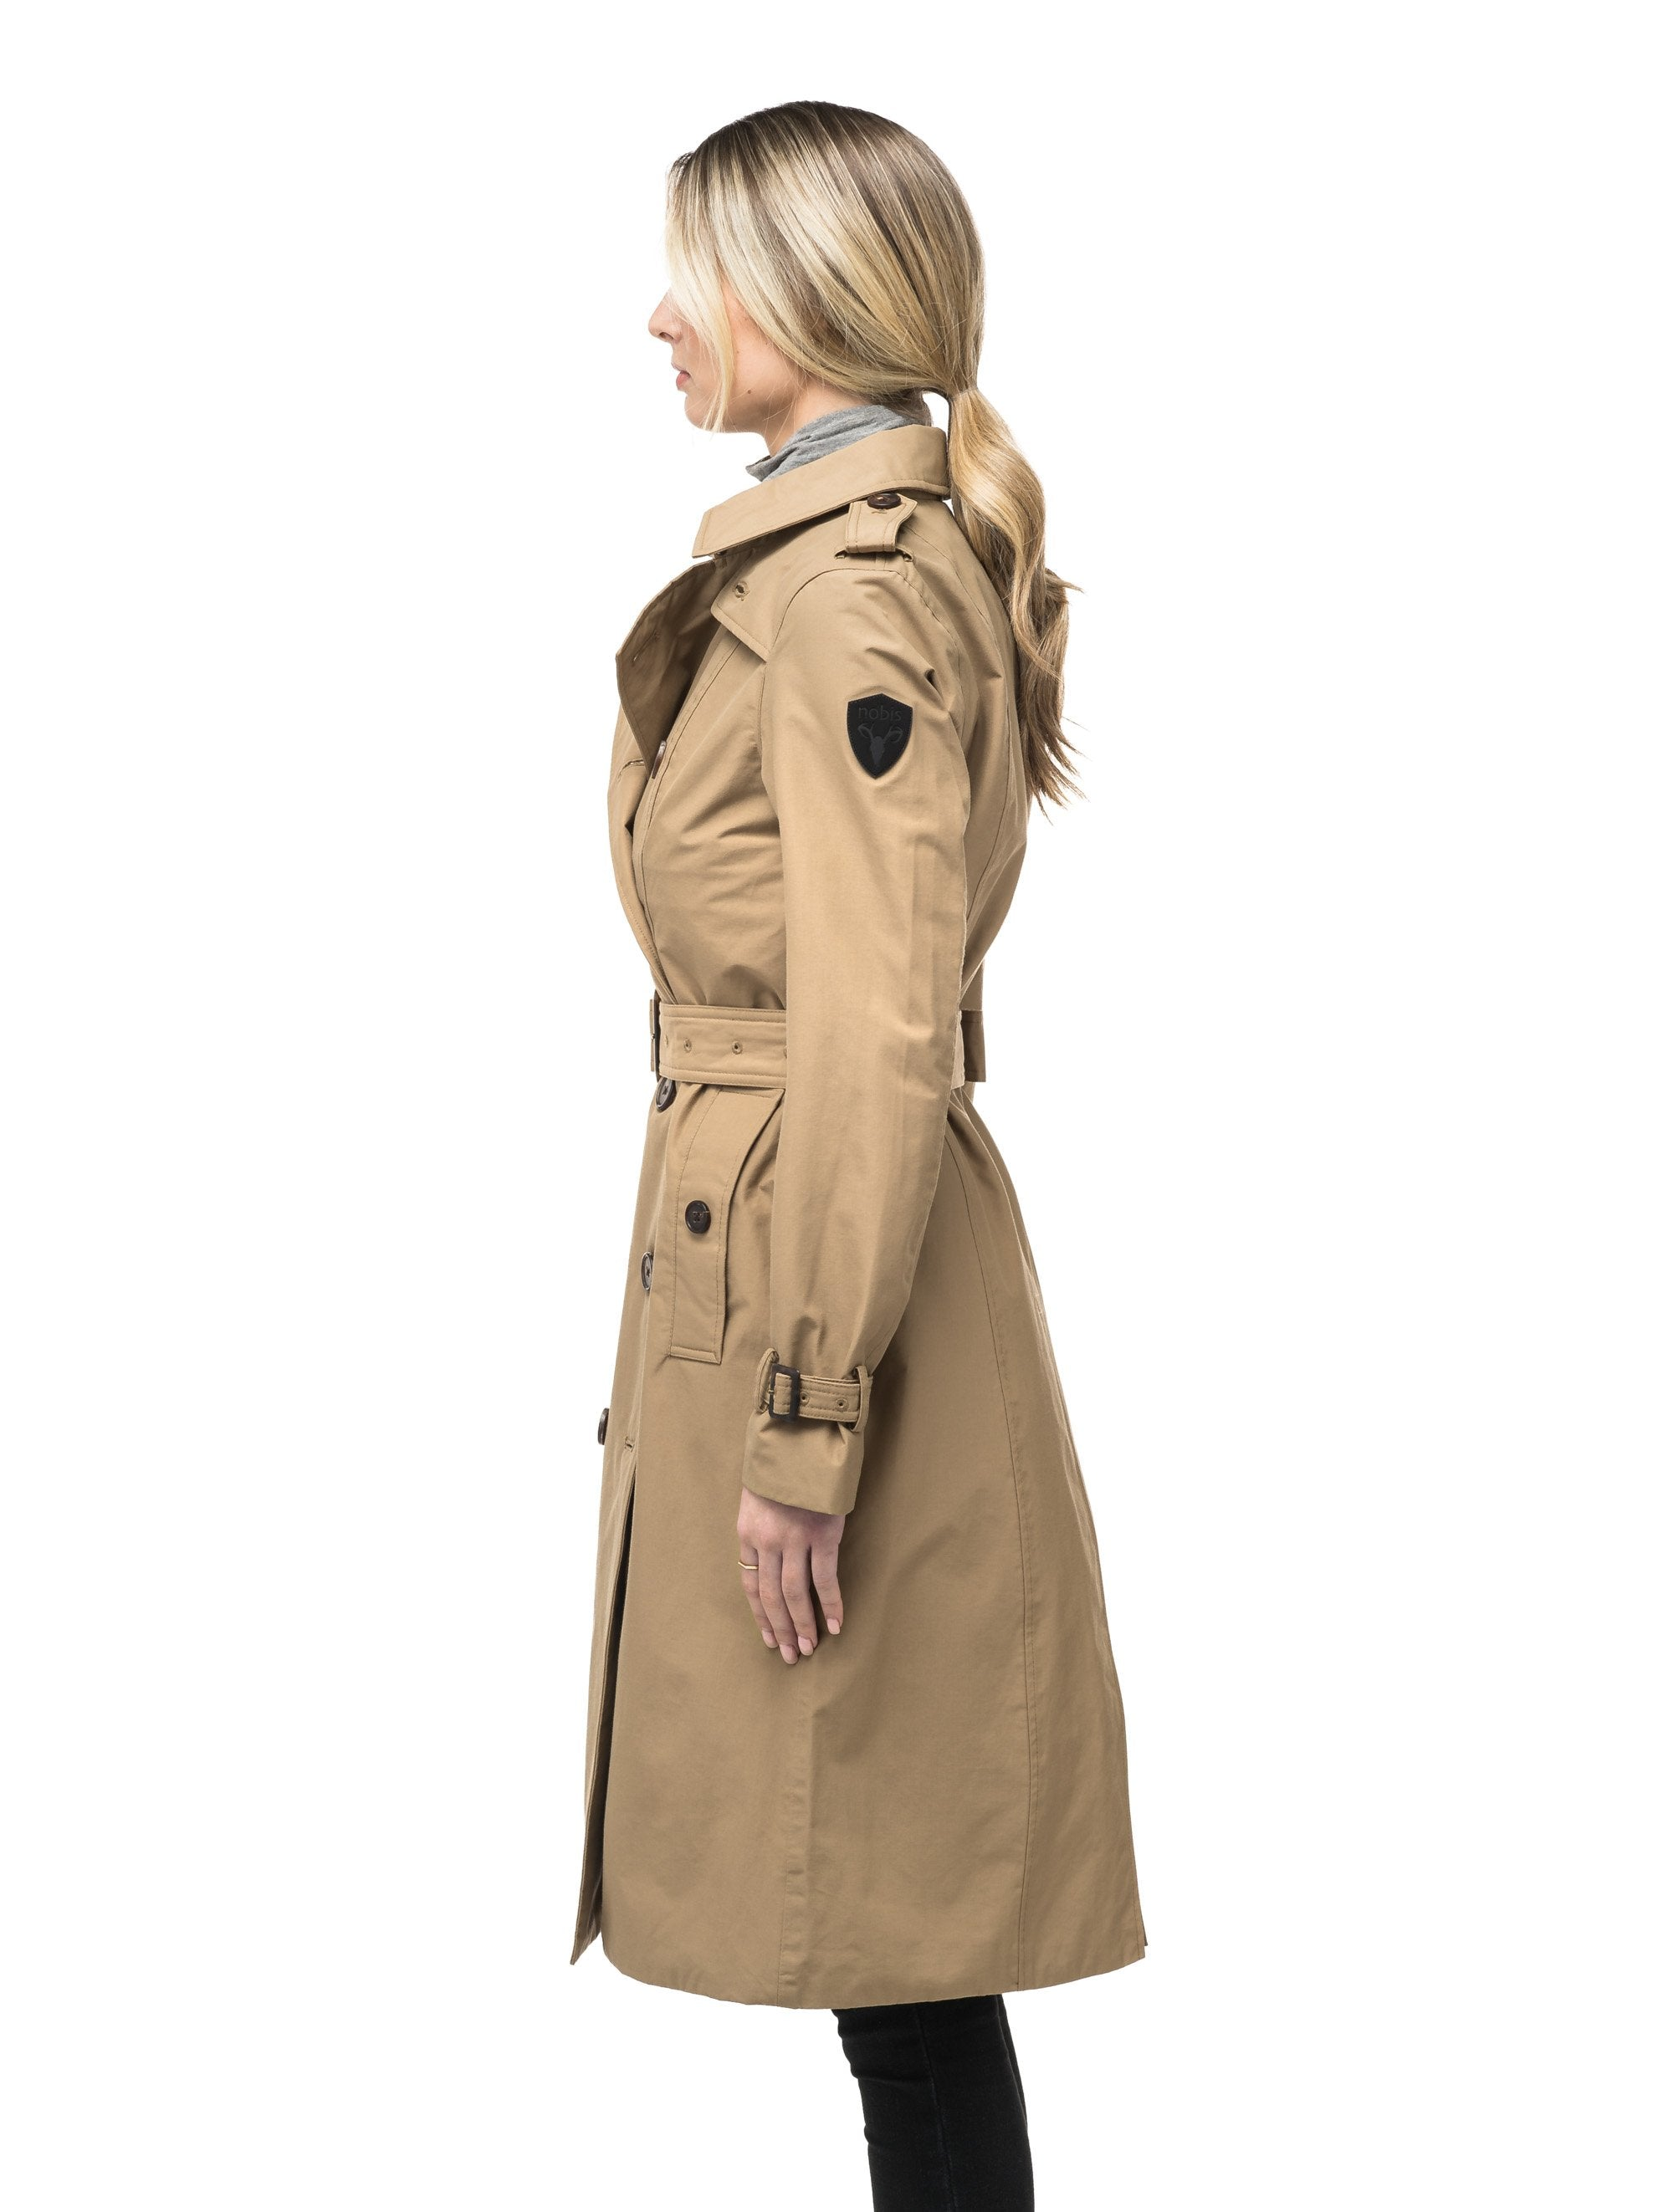 Women's knee length trench coat with removable belt in Cork | color